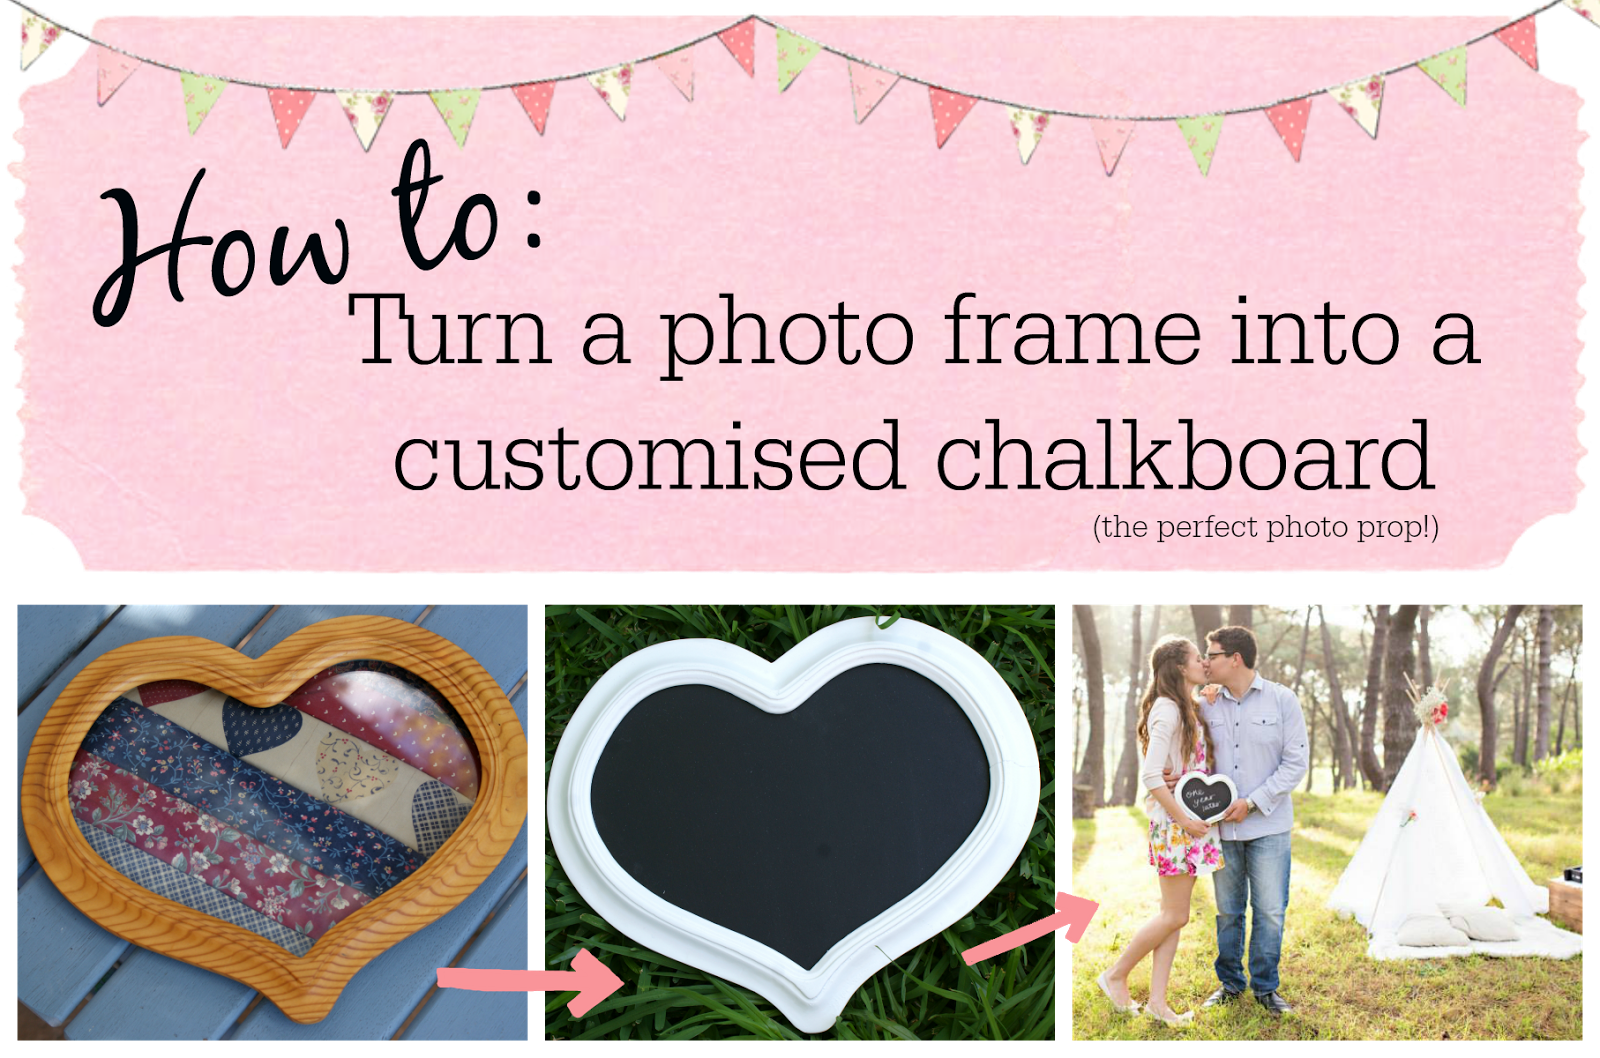 How to make a chalkboard from a photo frame - Custom photo prop DIY/Craft Project Idea